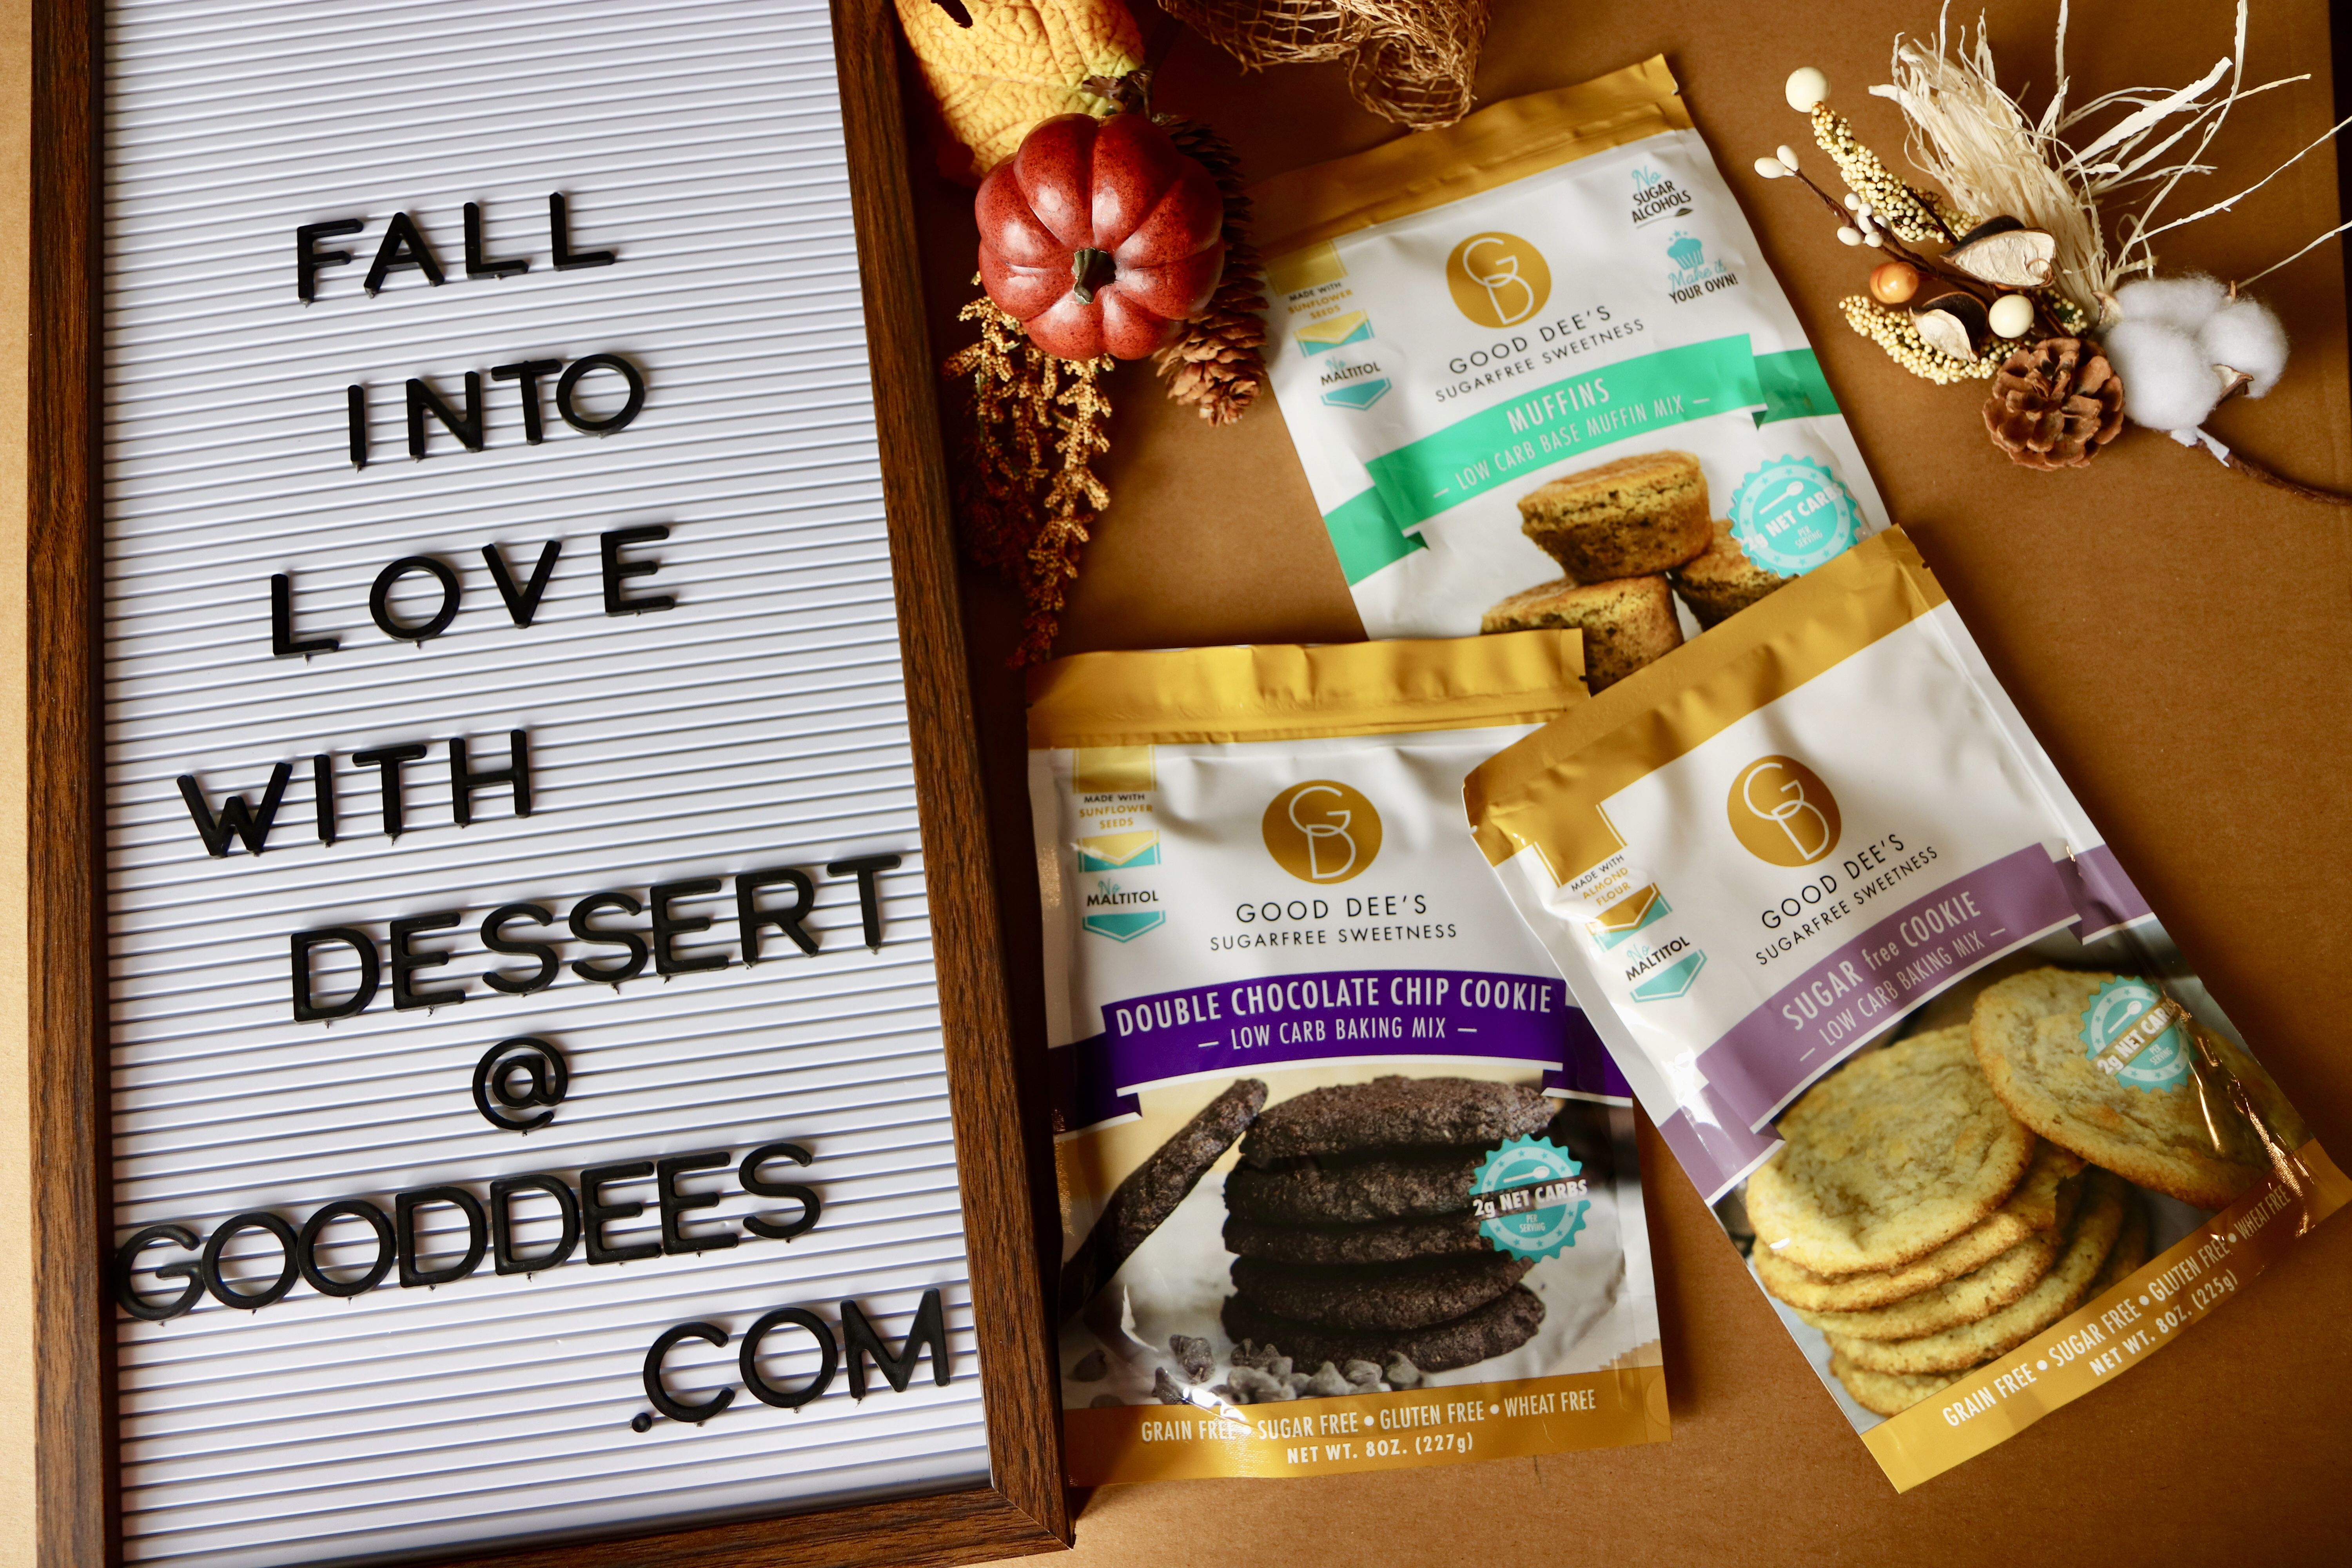 Fall is near stock up on your low carb sugar free treats